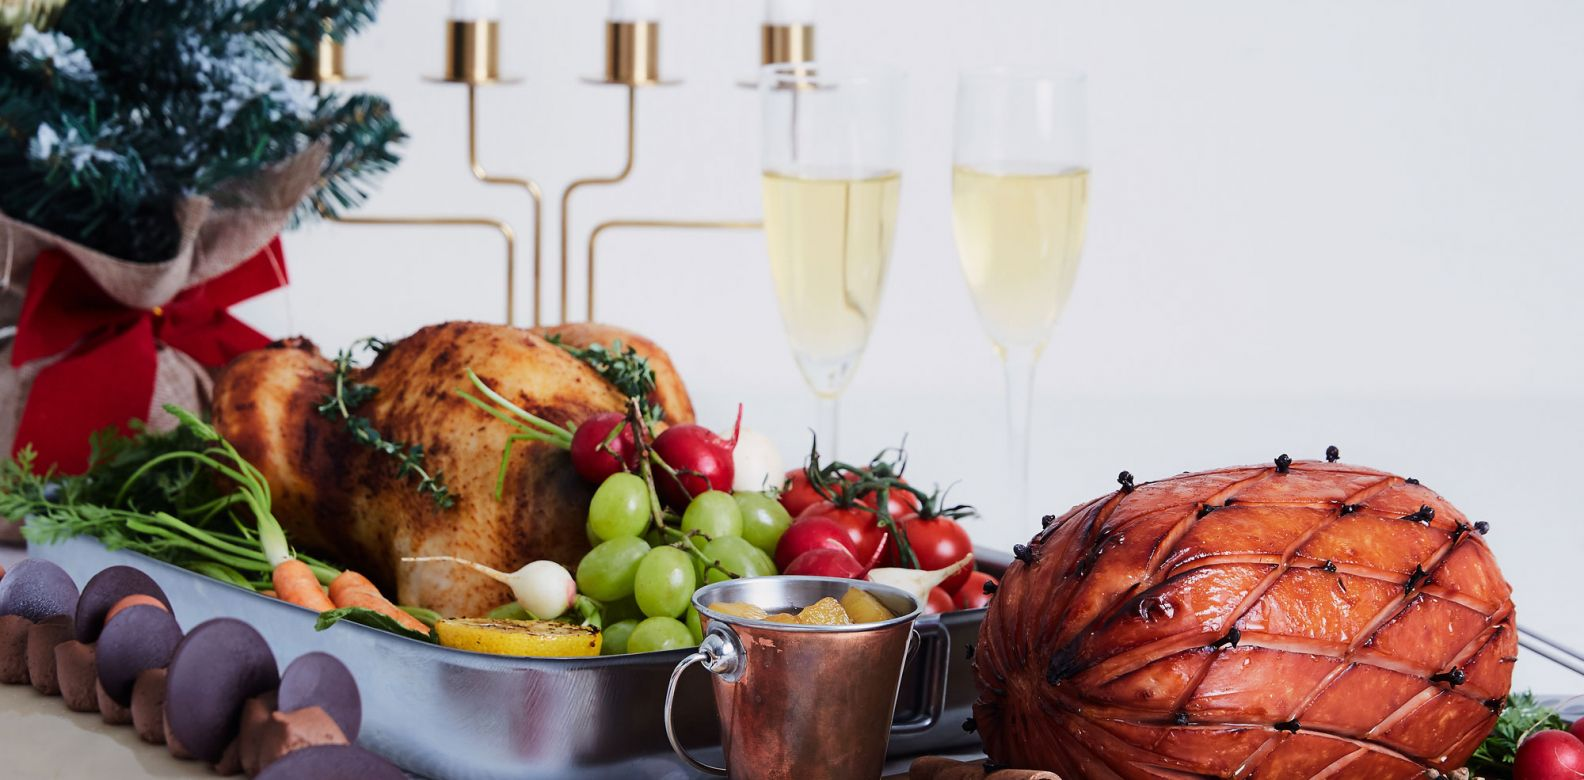 The Festive Set B which comes with the ham and chicken